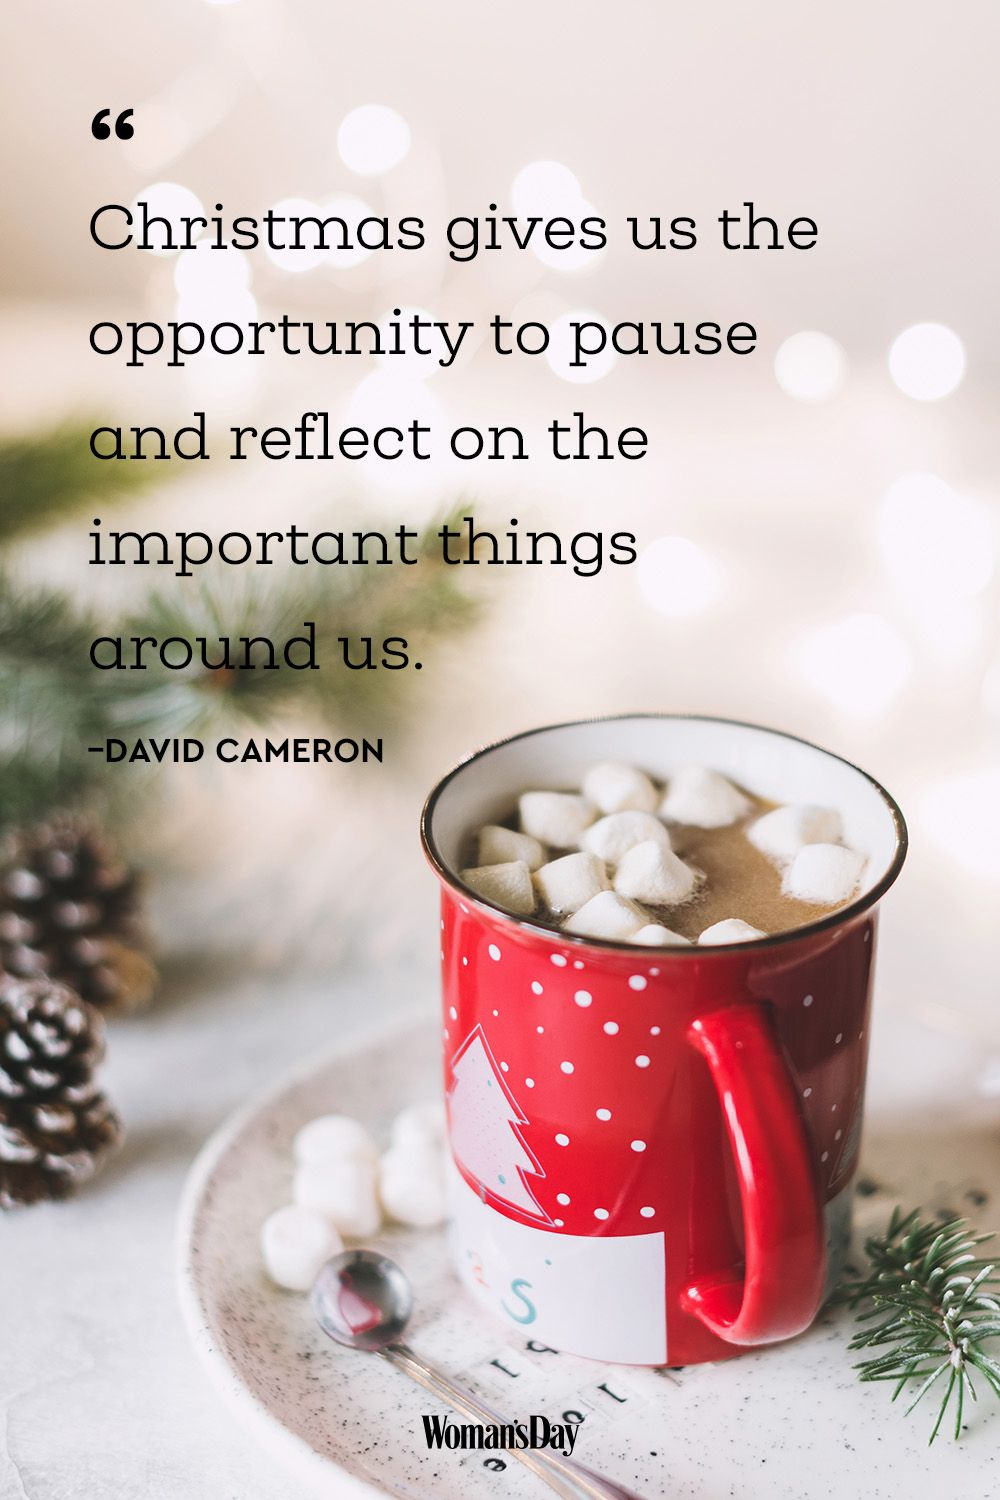 20 Merry Christmas Quotes - Inspirational Christmas Sayings and ...